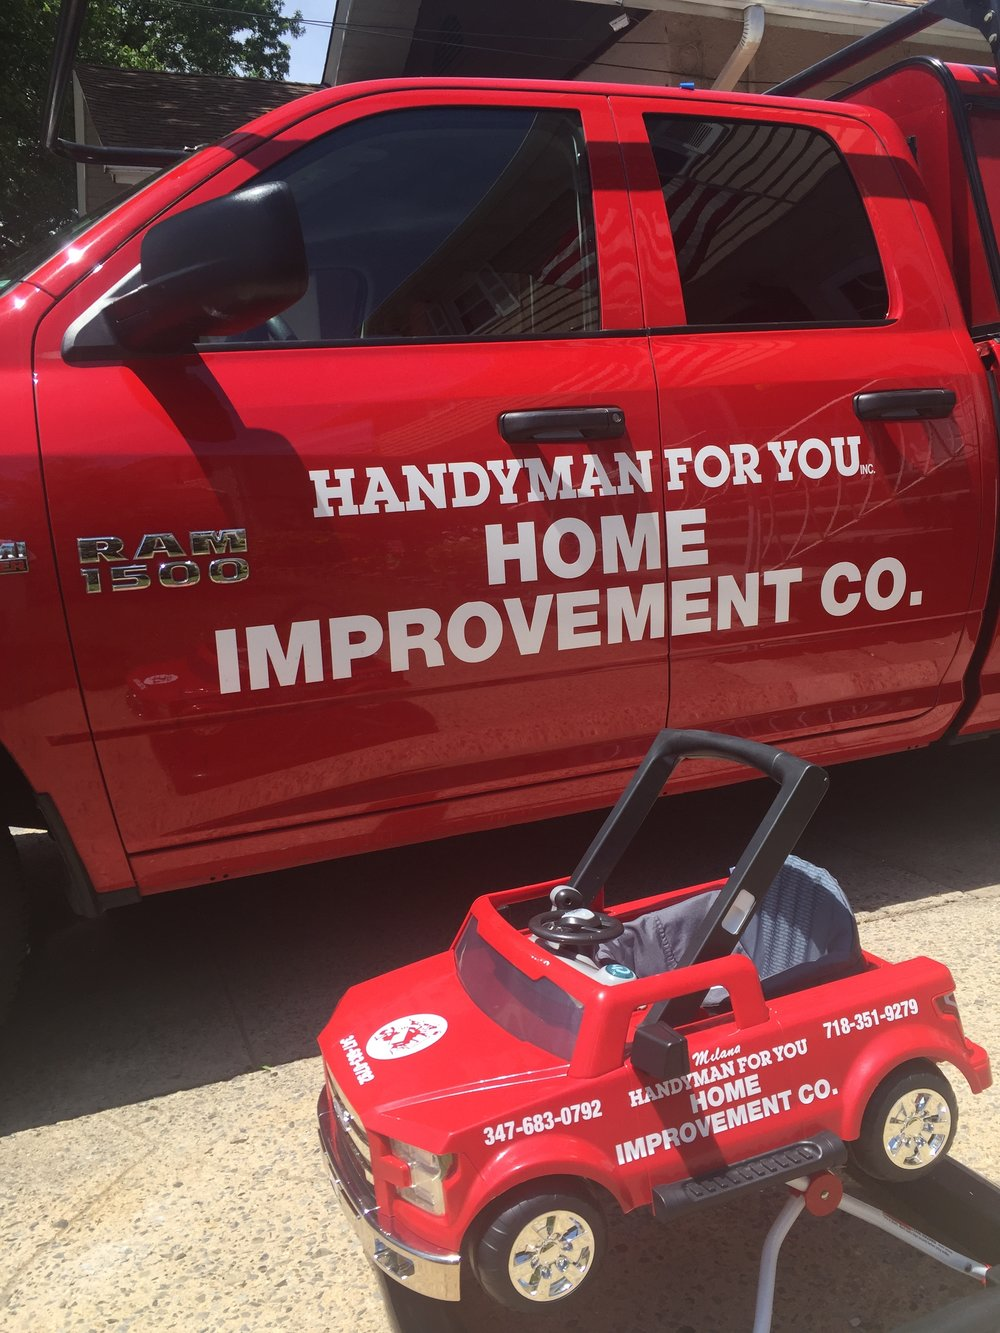 HANDYMAN FOR YOU   Home Improvement Co.   Serving Staten Island since 2001.   Contact us today!